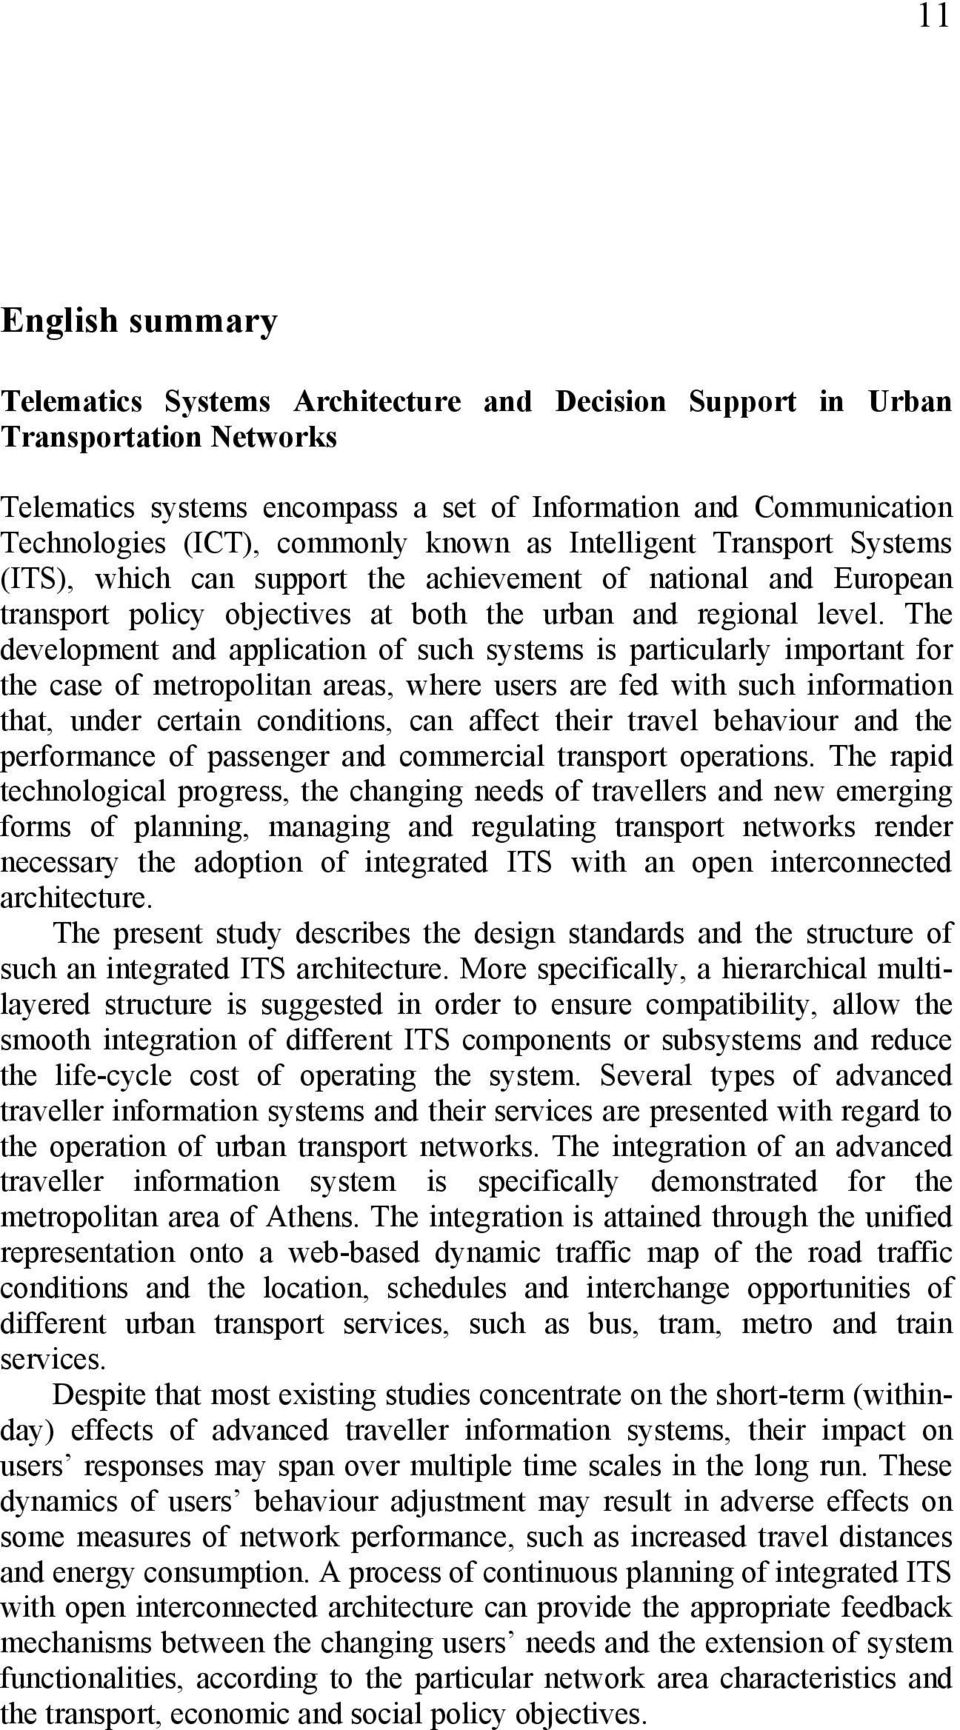 The development and application of such systems is particularly important for the case of metropolitan areas, where users are fed with such information that, under certain conditions, can affect